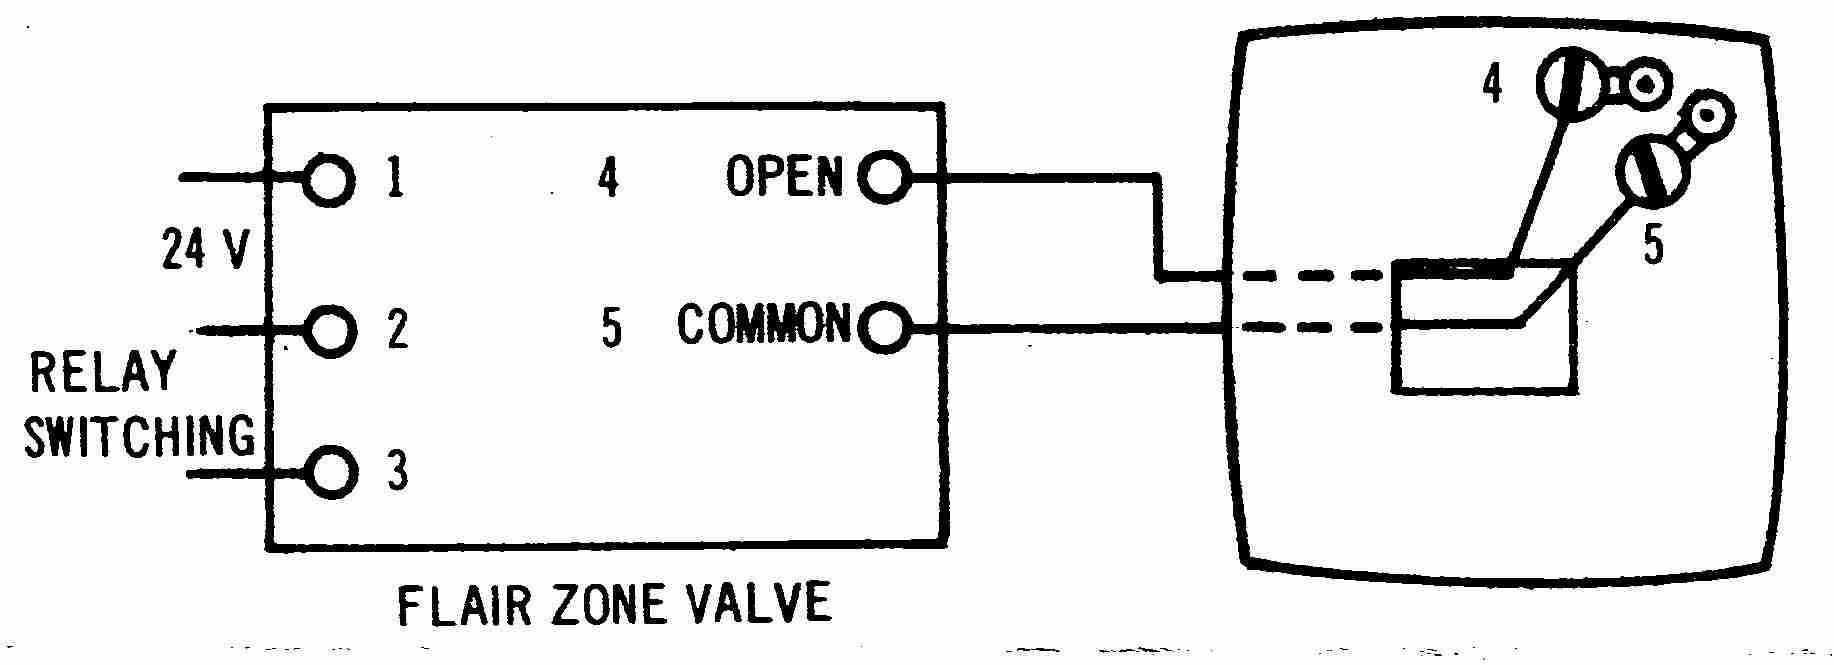 Room Thermostat Wiring Diagrams For Hvac Systems Relay Diagram In Addition 4 Wire Trailer Lights Flair 2 Thermosat